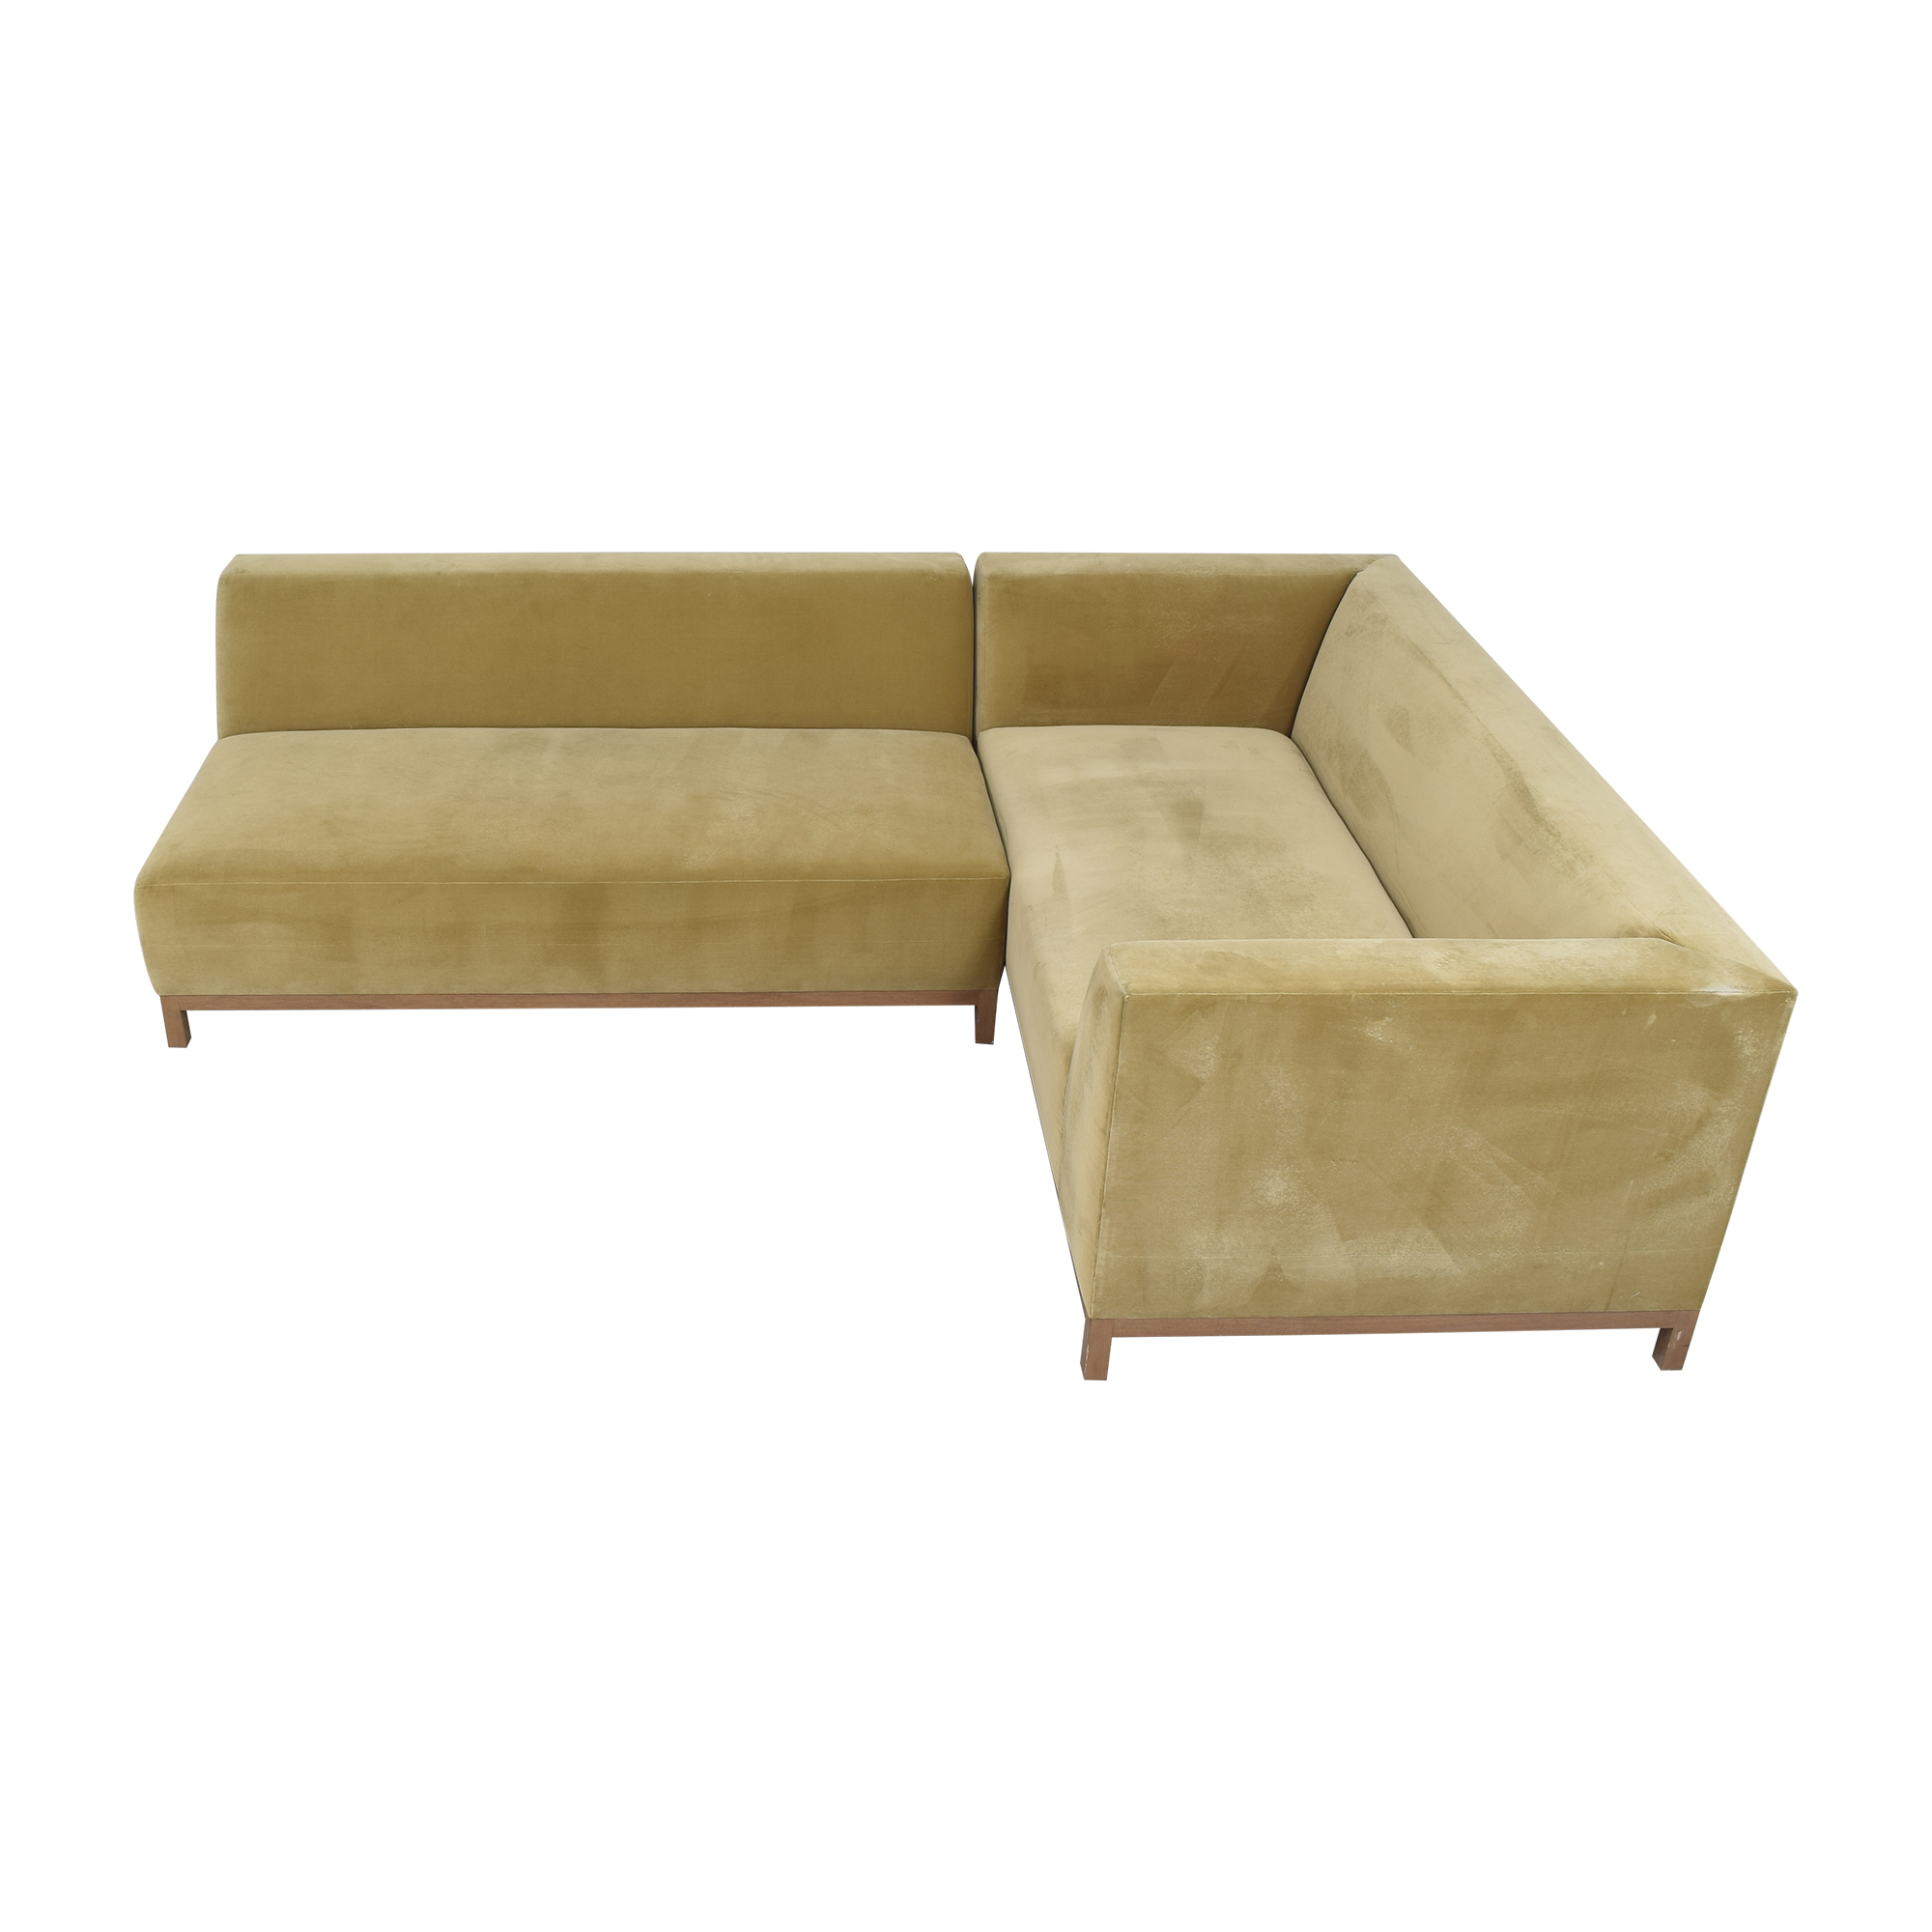 ROOM ROOM Bruno Custom Reversible Sectional Sofa gold and brown